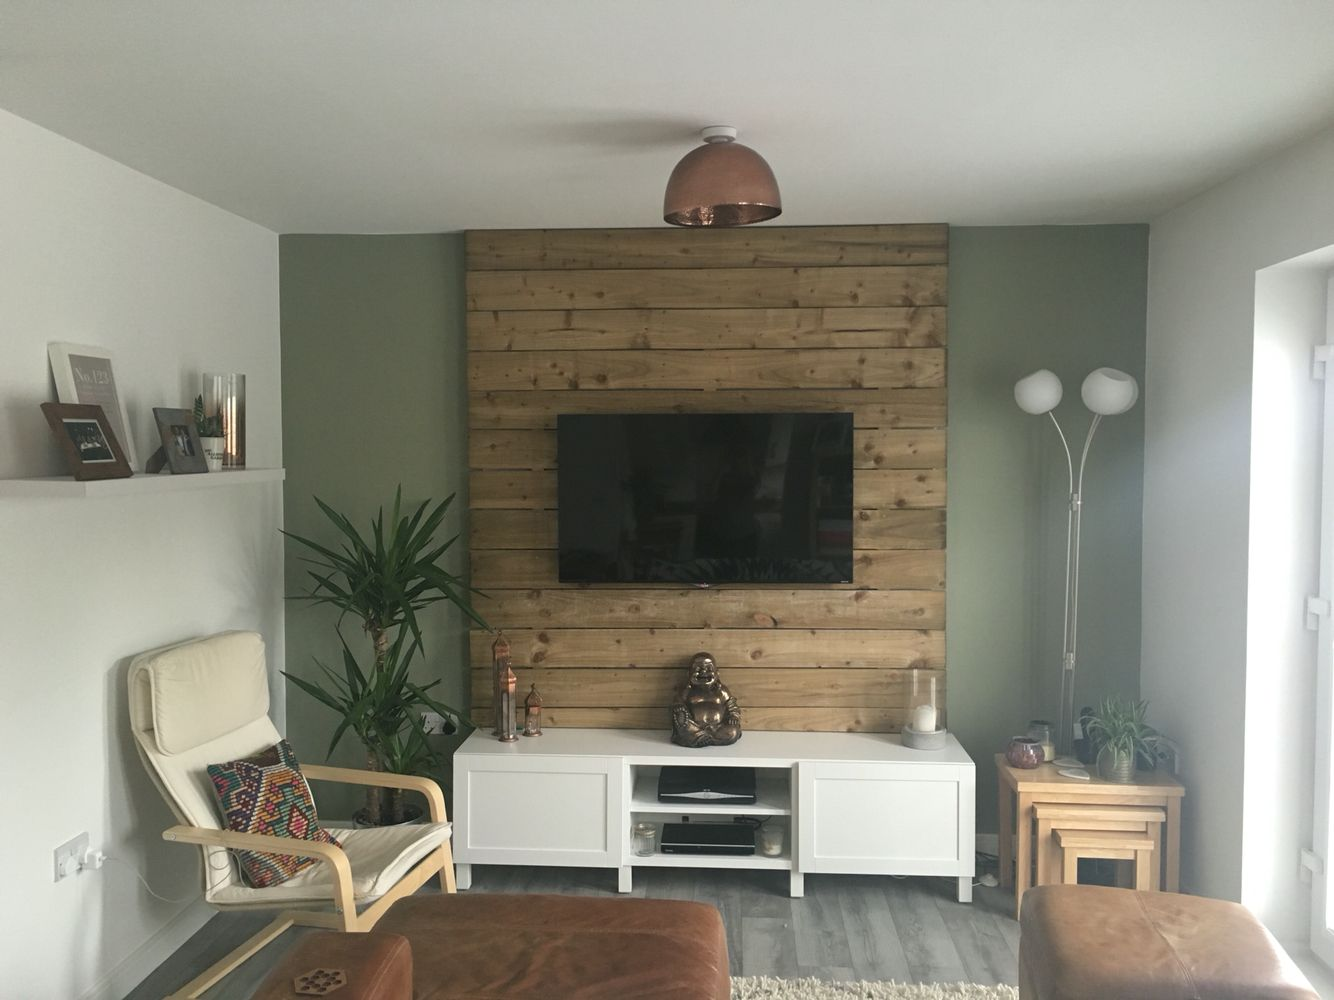 My living room DIY wood pallet wall TV wall mount Earth tones